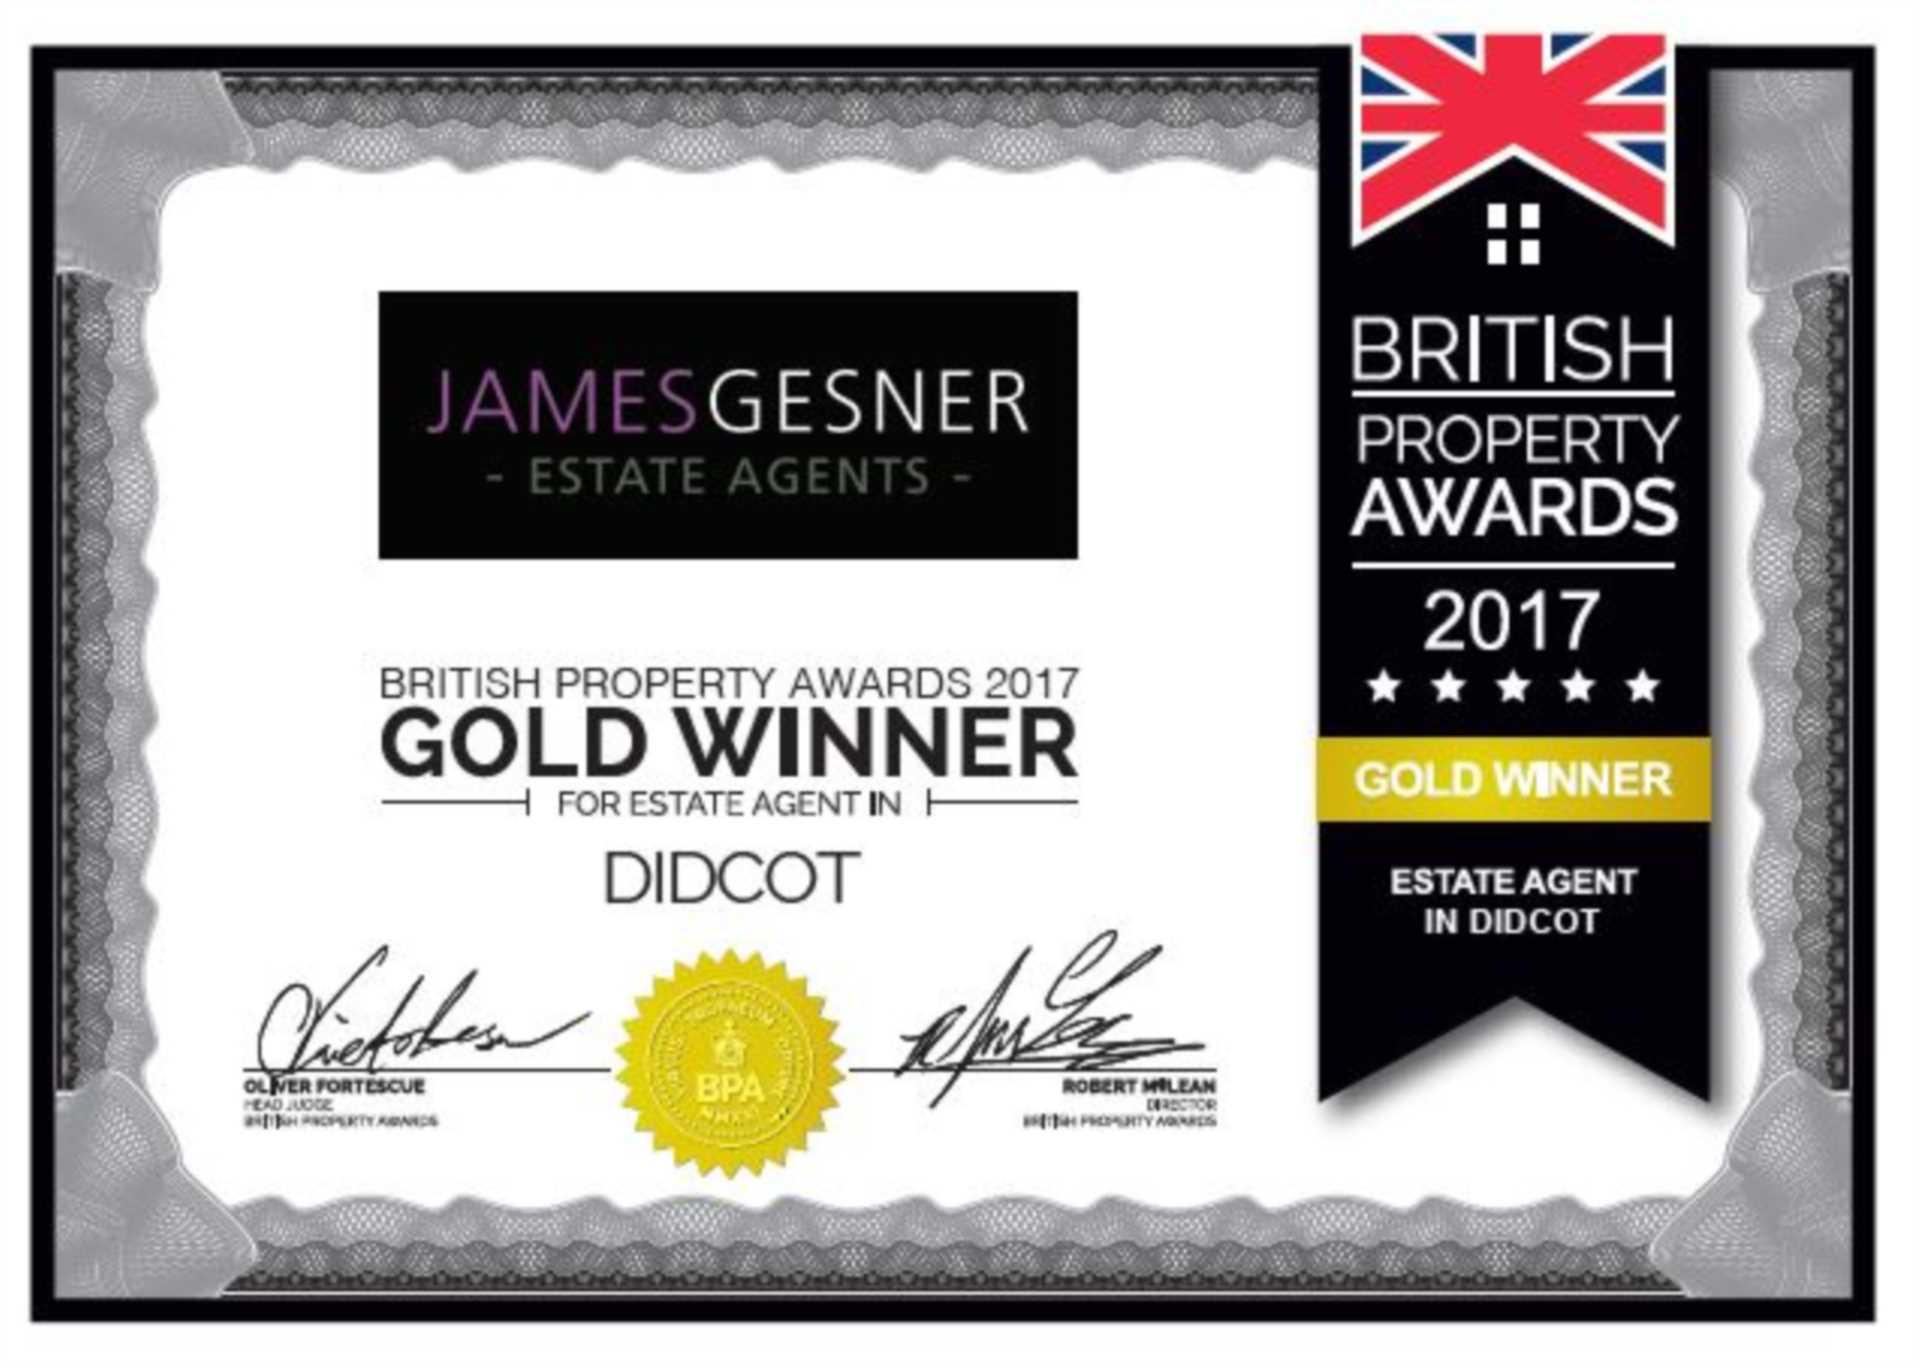 British Property Awards Gold Winner!